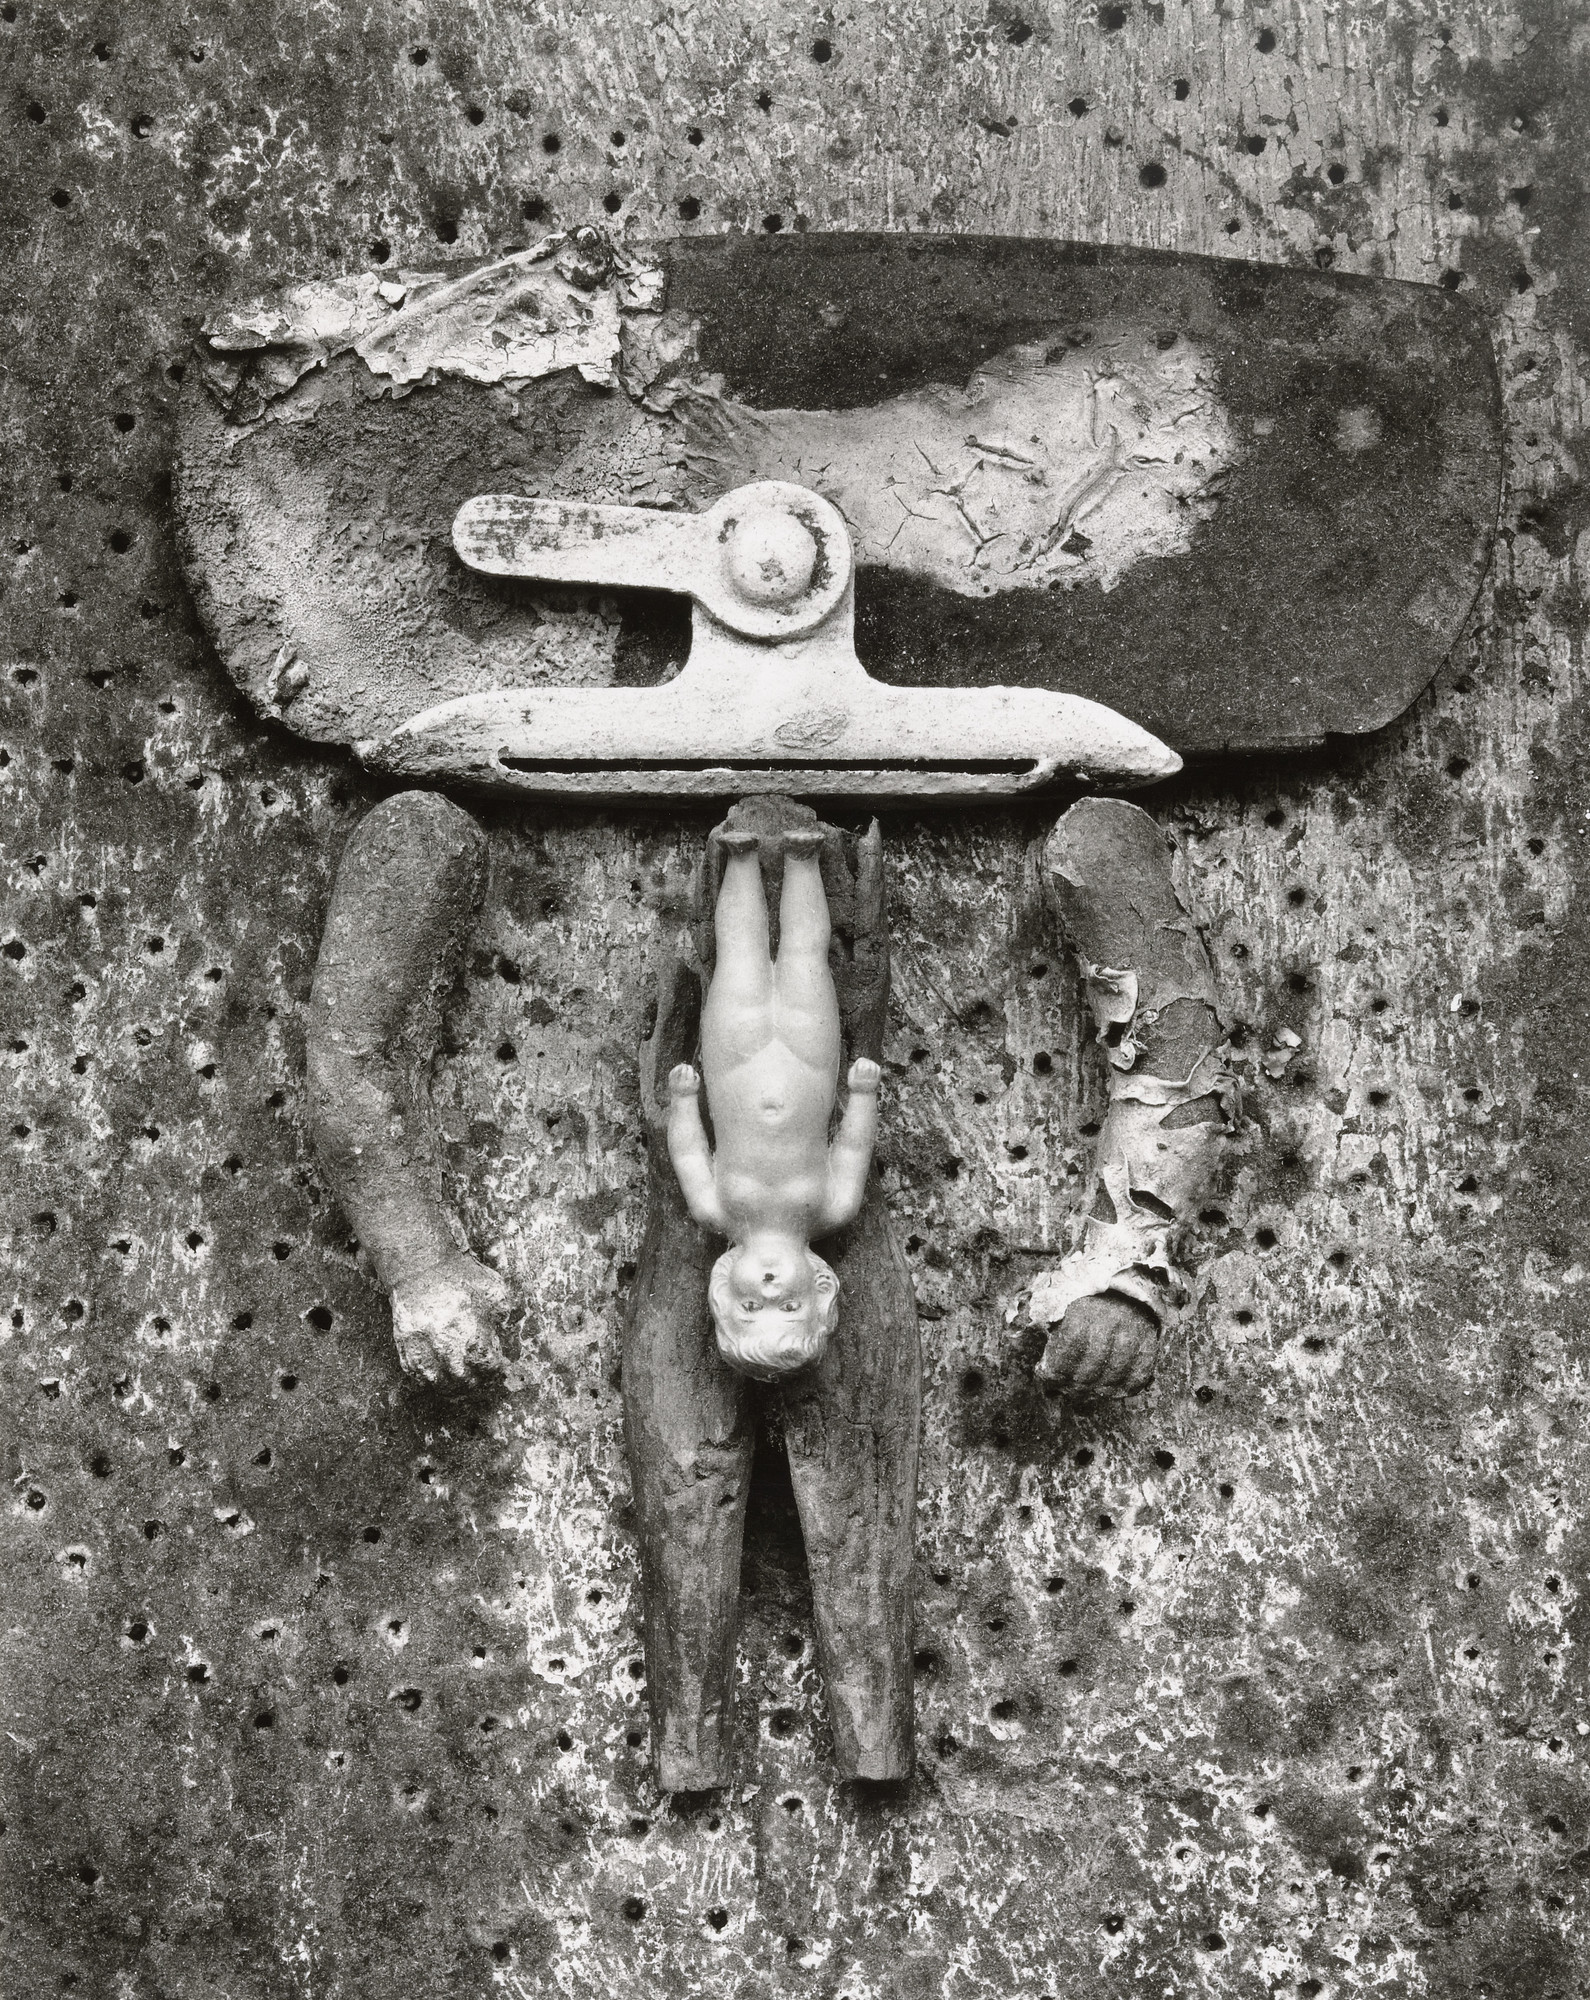 Frederick Sommer. Valise d'Adam. 1949. Gelatin silver print, 9 3⁄8 × 7 3/8ʺ (23.6 × 18.8 cm). Gift of the photographer